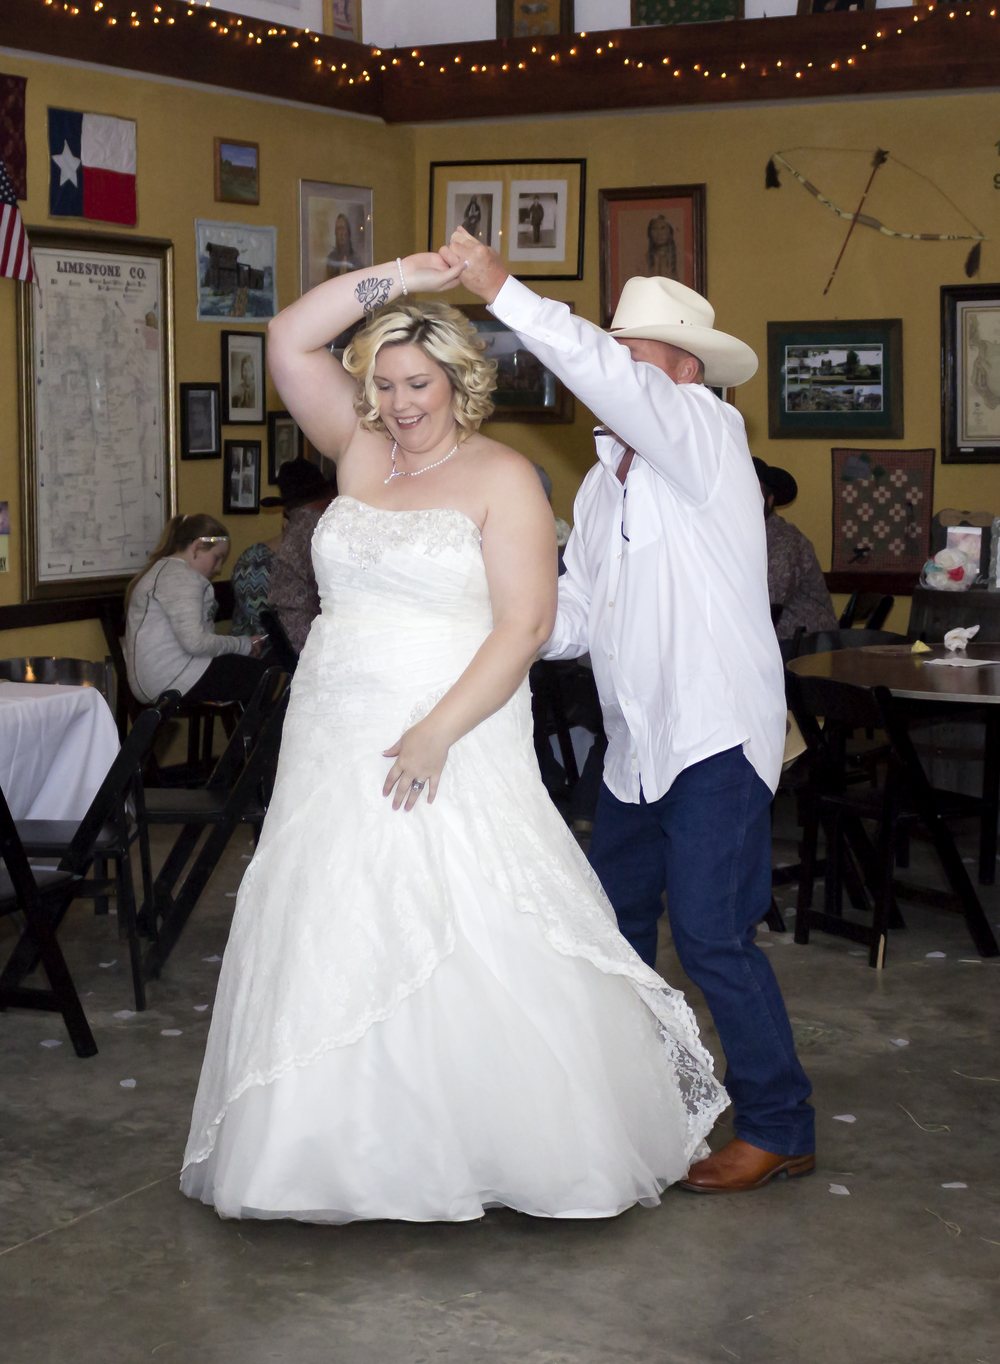 When Courtney danced with her dad, they had an upbeat song which was fun to watch them dance too.